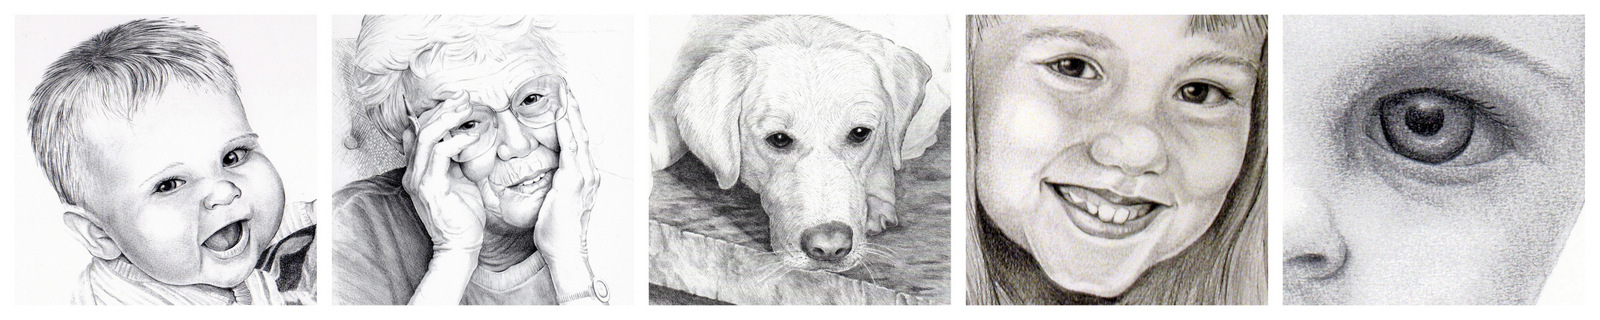 Portraits, Graphite Drawings, Karen Beckwith, Artist